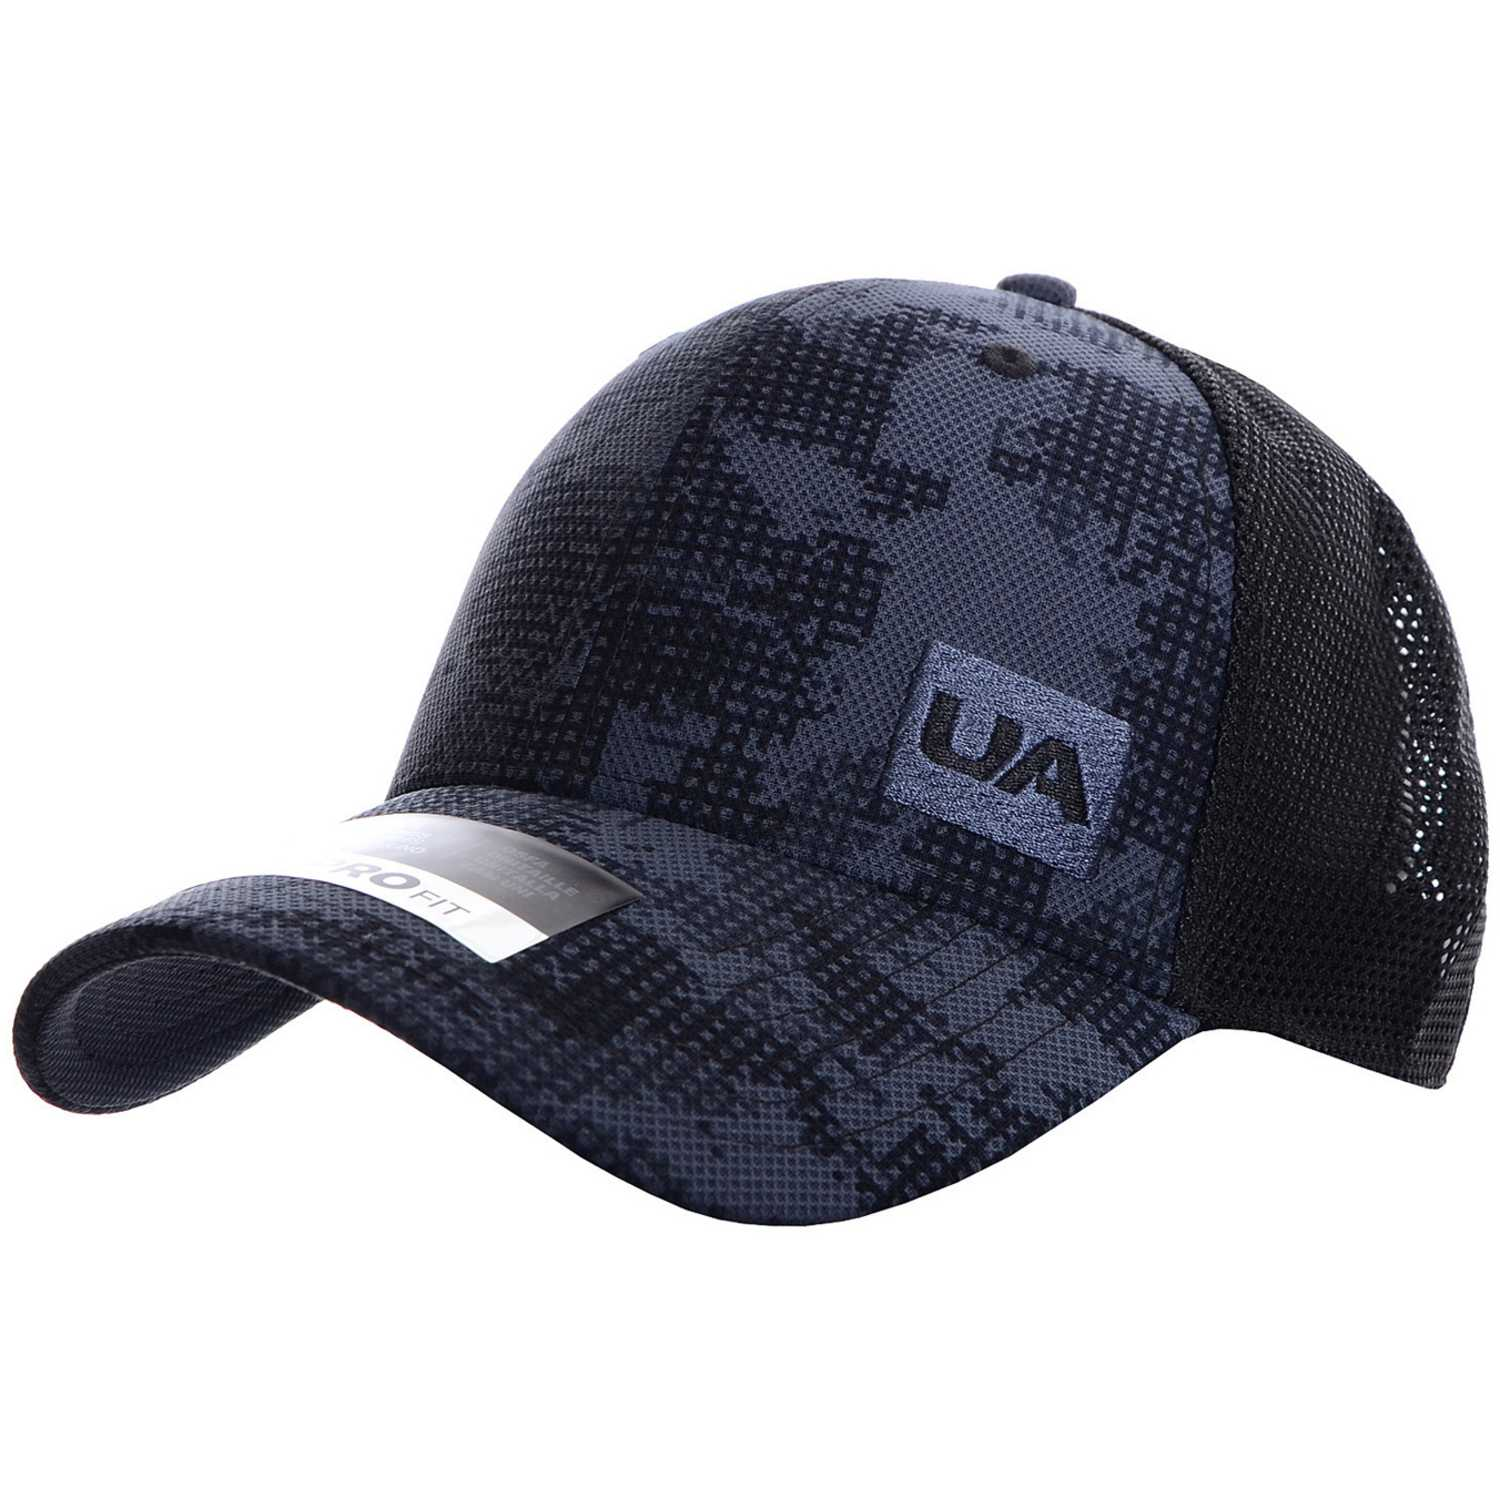 Gorro de Hombre Under Armour NG/GR men's blitzing trucker 3.0